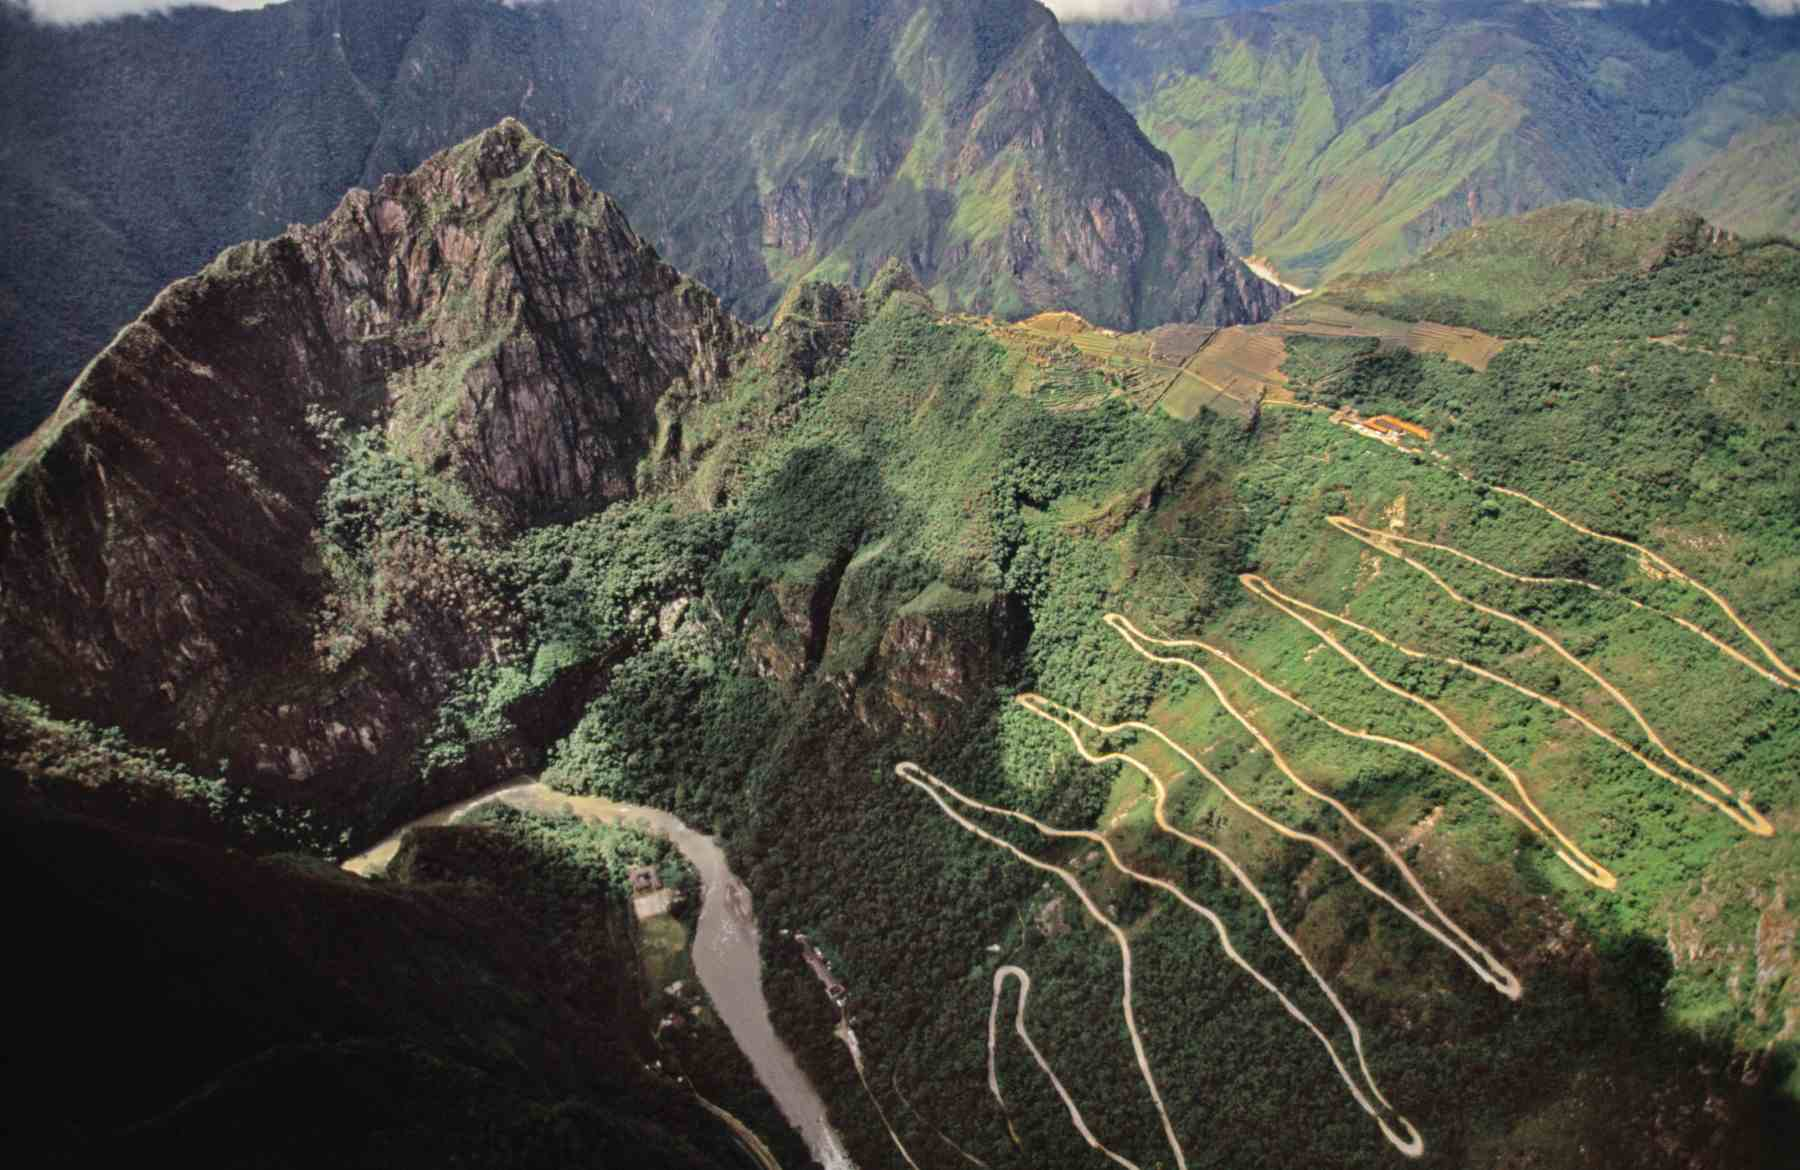 Aerial view of road leading to Machu Picchu